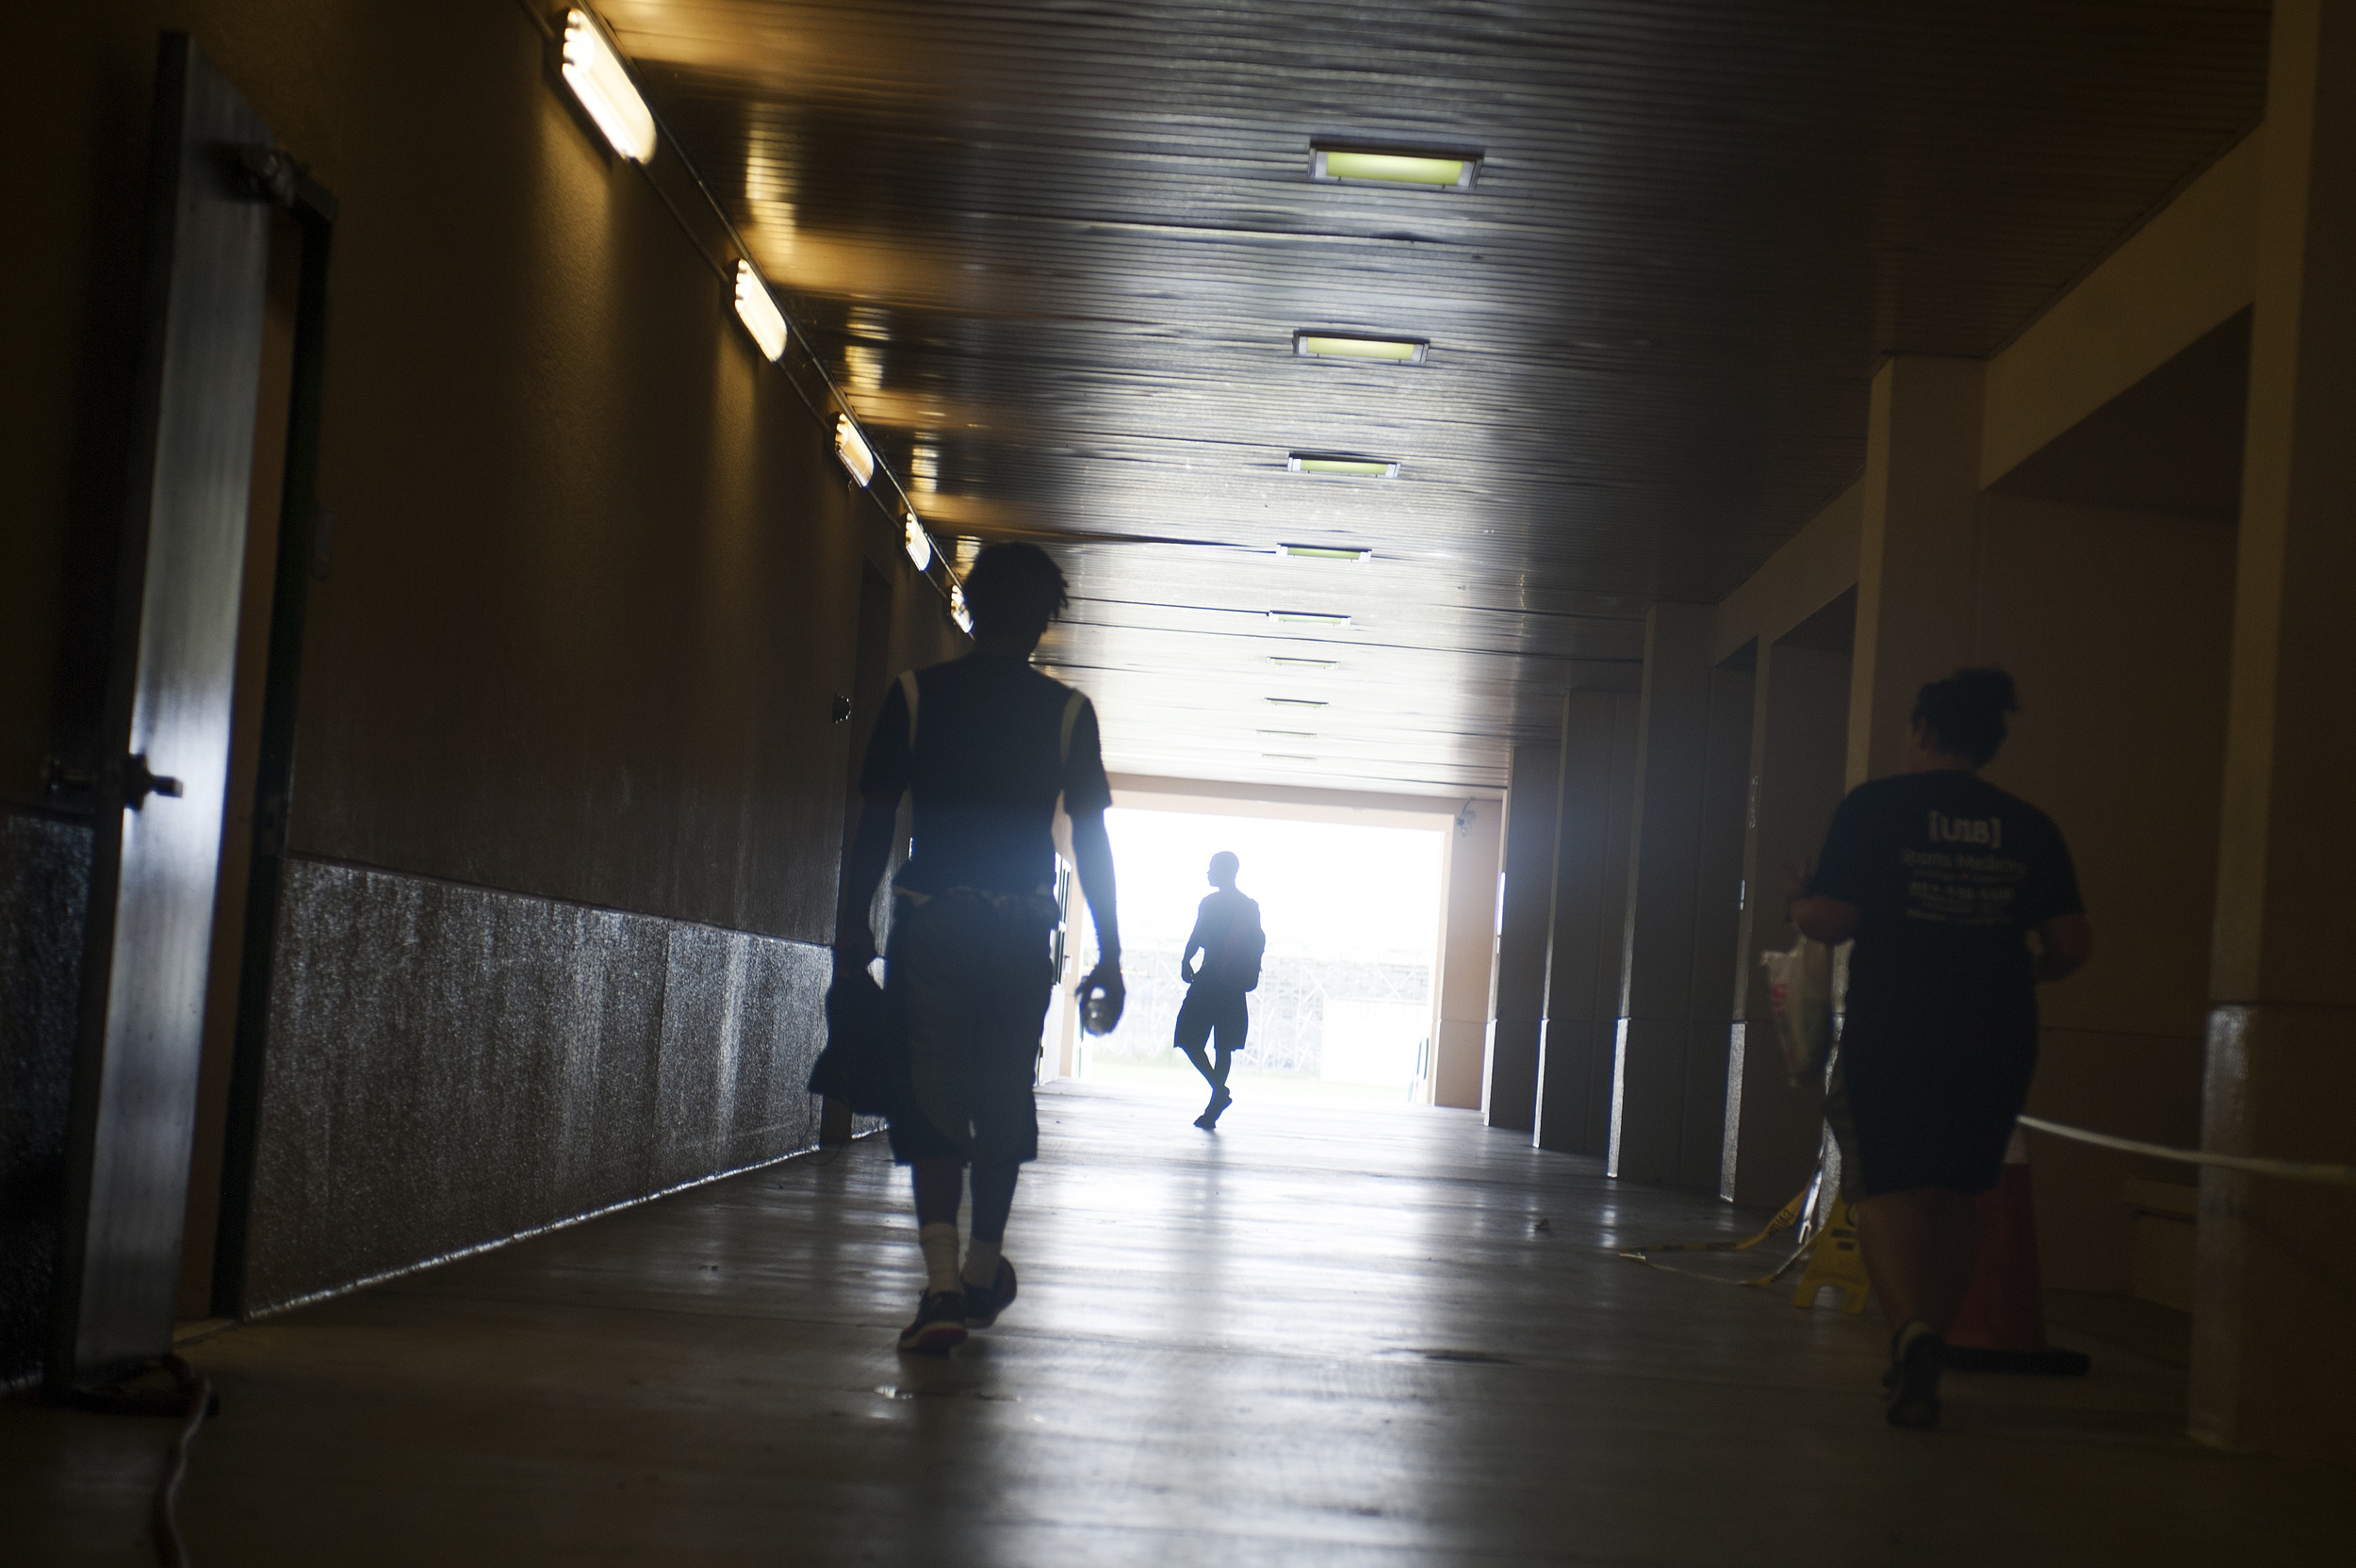 Flanagan high school football players make their way to the locker room prior to the start of the first practice of the high school season at Flanagan High School on Monday, Aug. 1, 2016. The reigning state champions look to repeat again despite the loss of key players from last year.